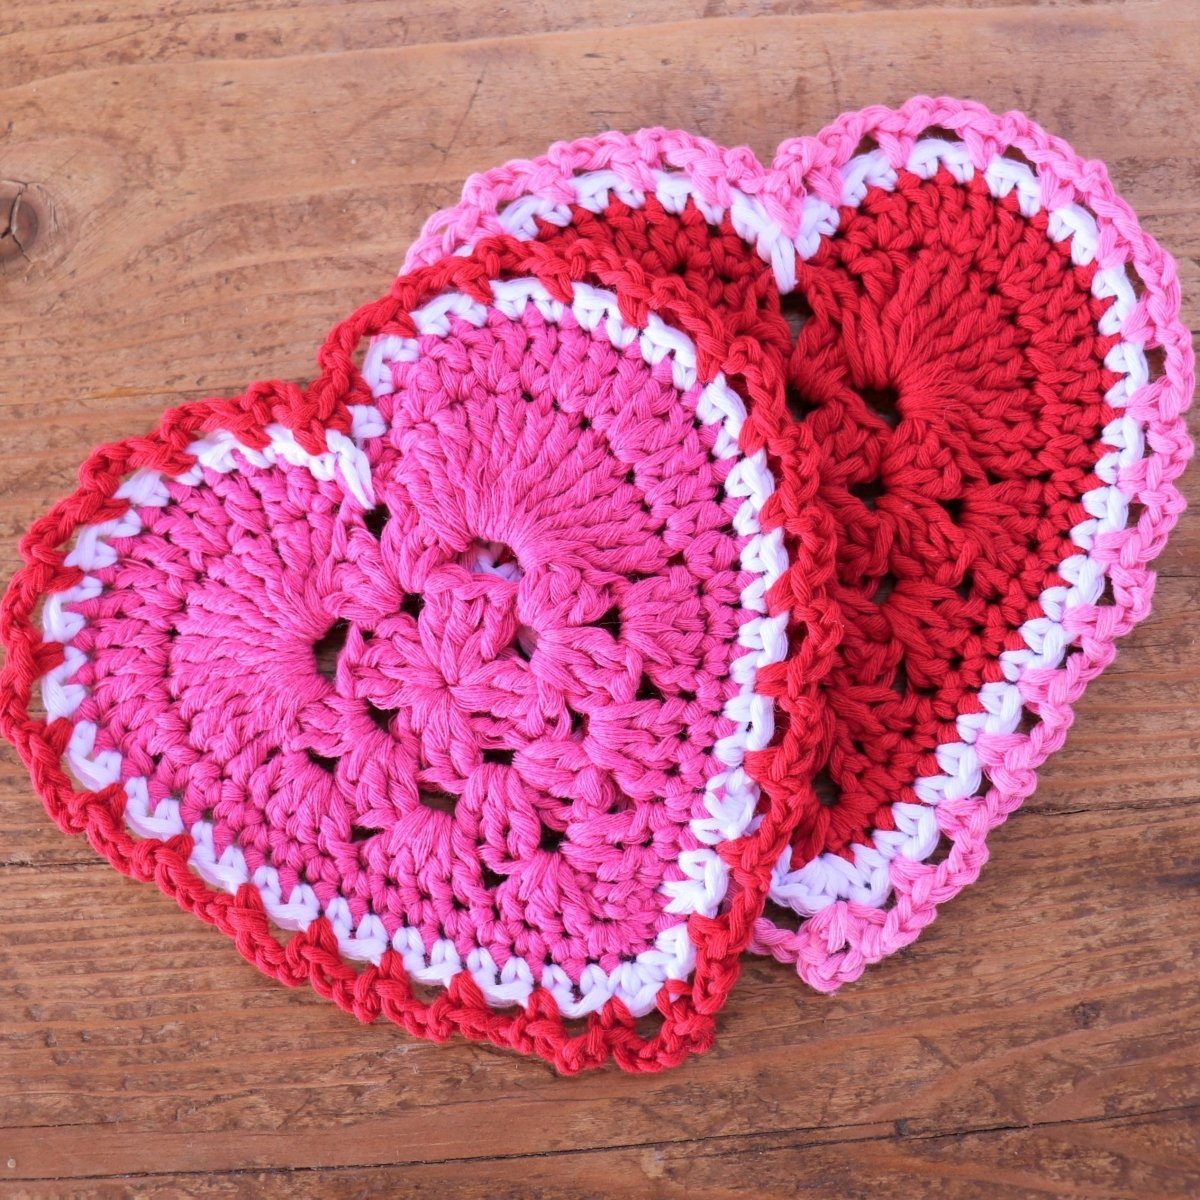 Granny Square Heart Crochet Coasters - secretyarnery